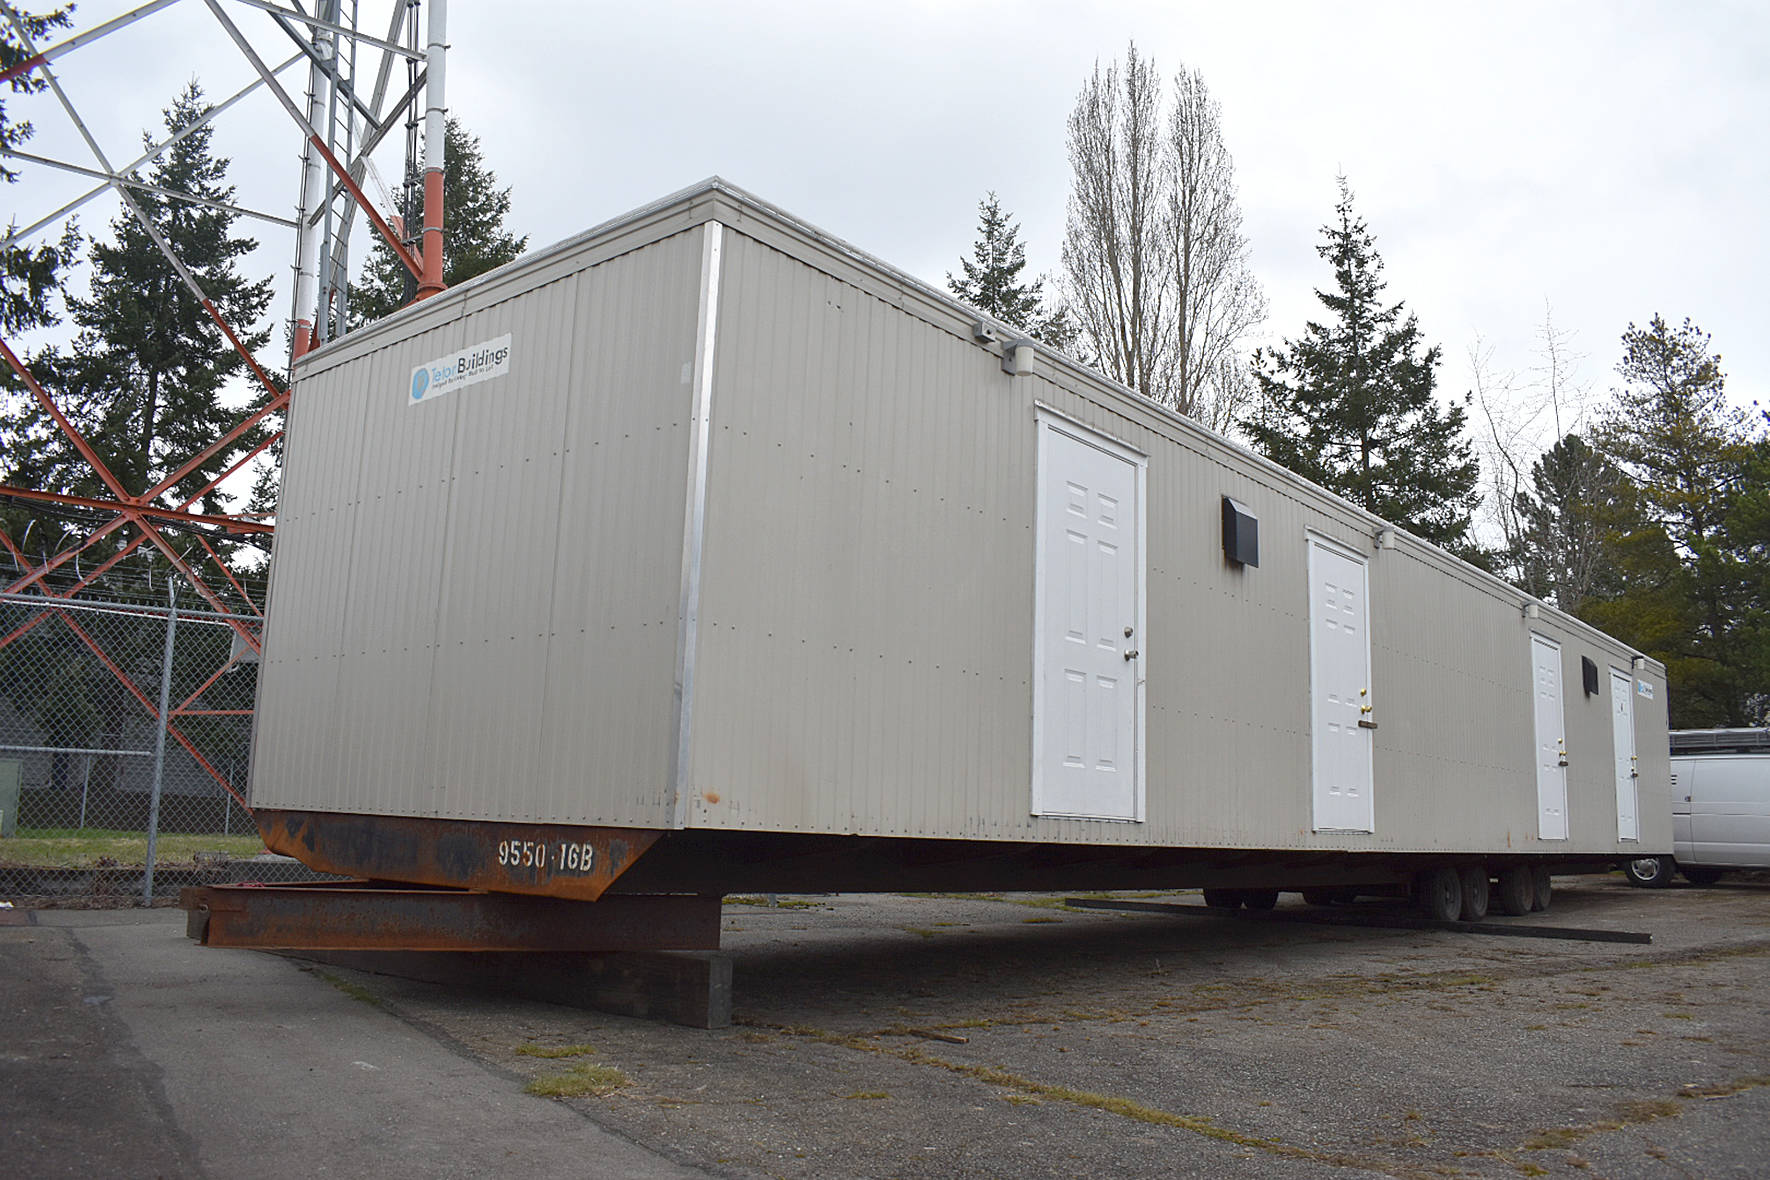 Photo by Haley Ausbun. A preview of the first modular unit being used to house King County residents under quarantine for COVID-19, coronavirus. The units will be located on a county-onward parcel in White Center, where an old office building is planned to be demolished to make space.